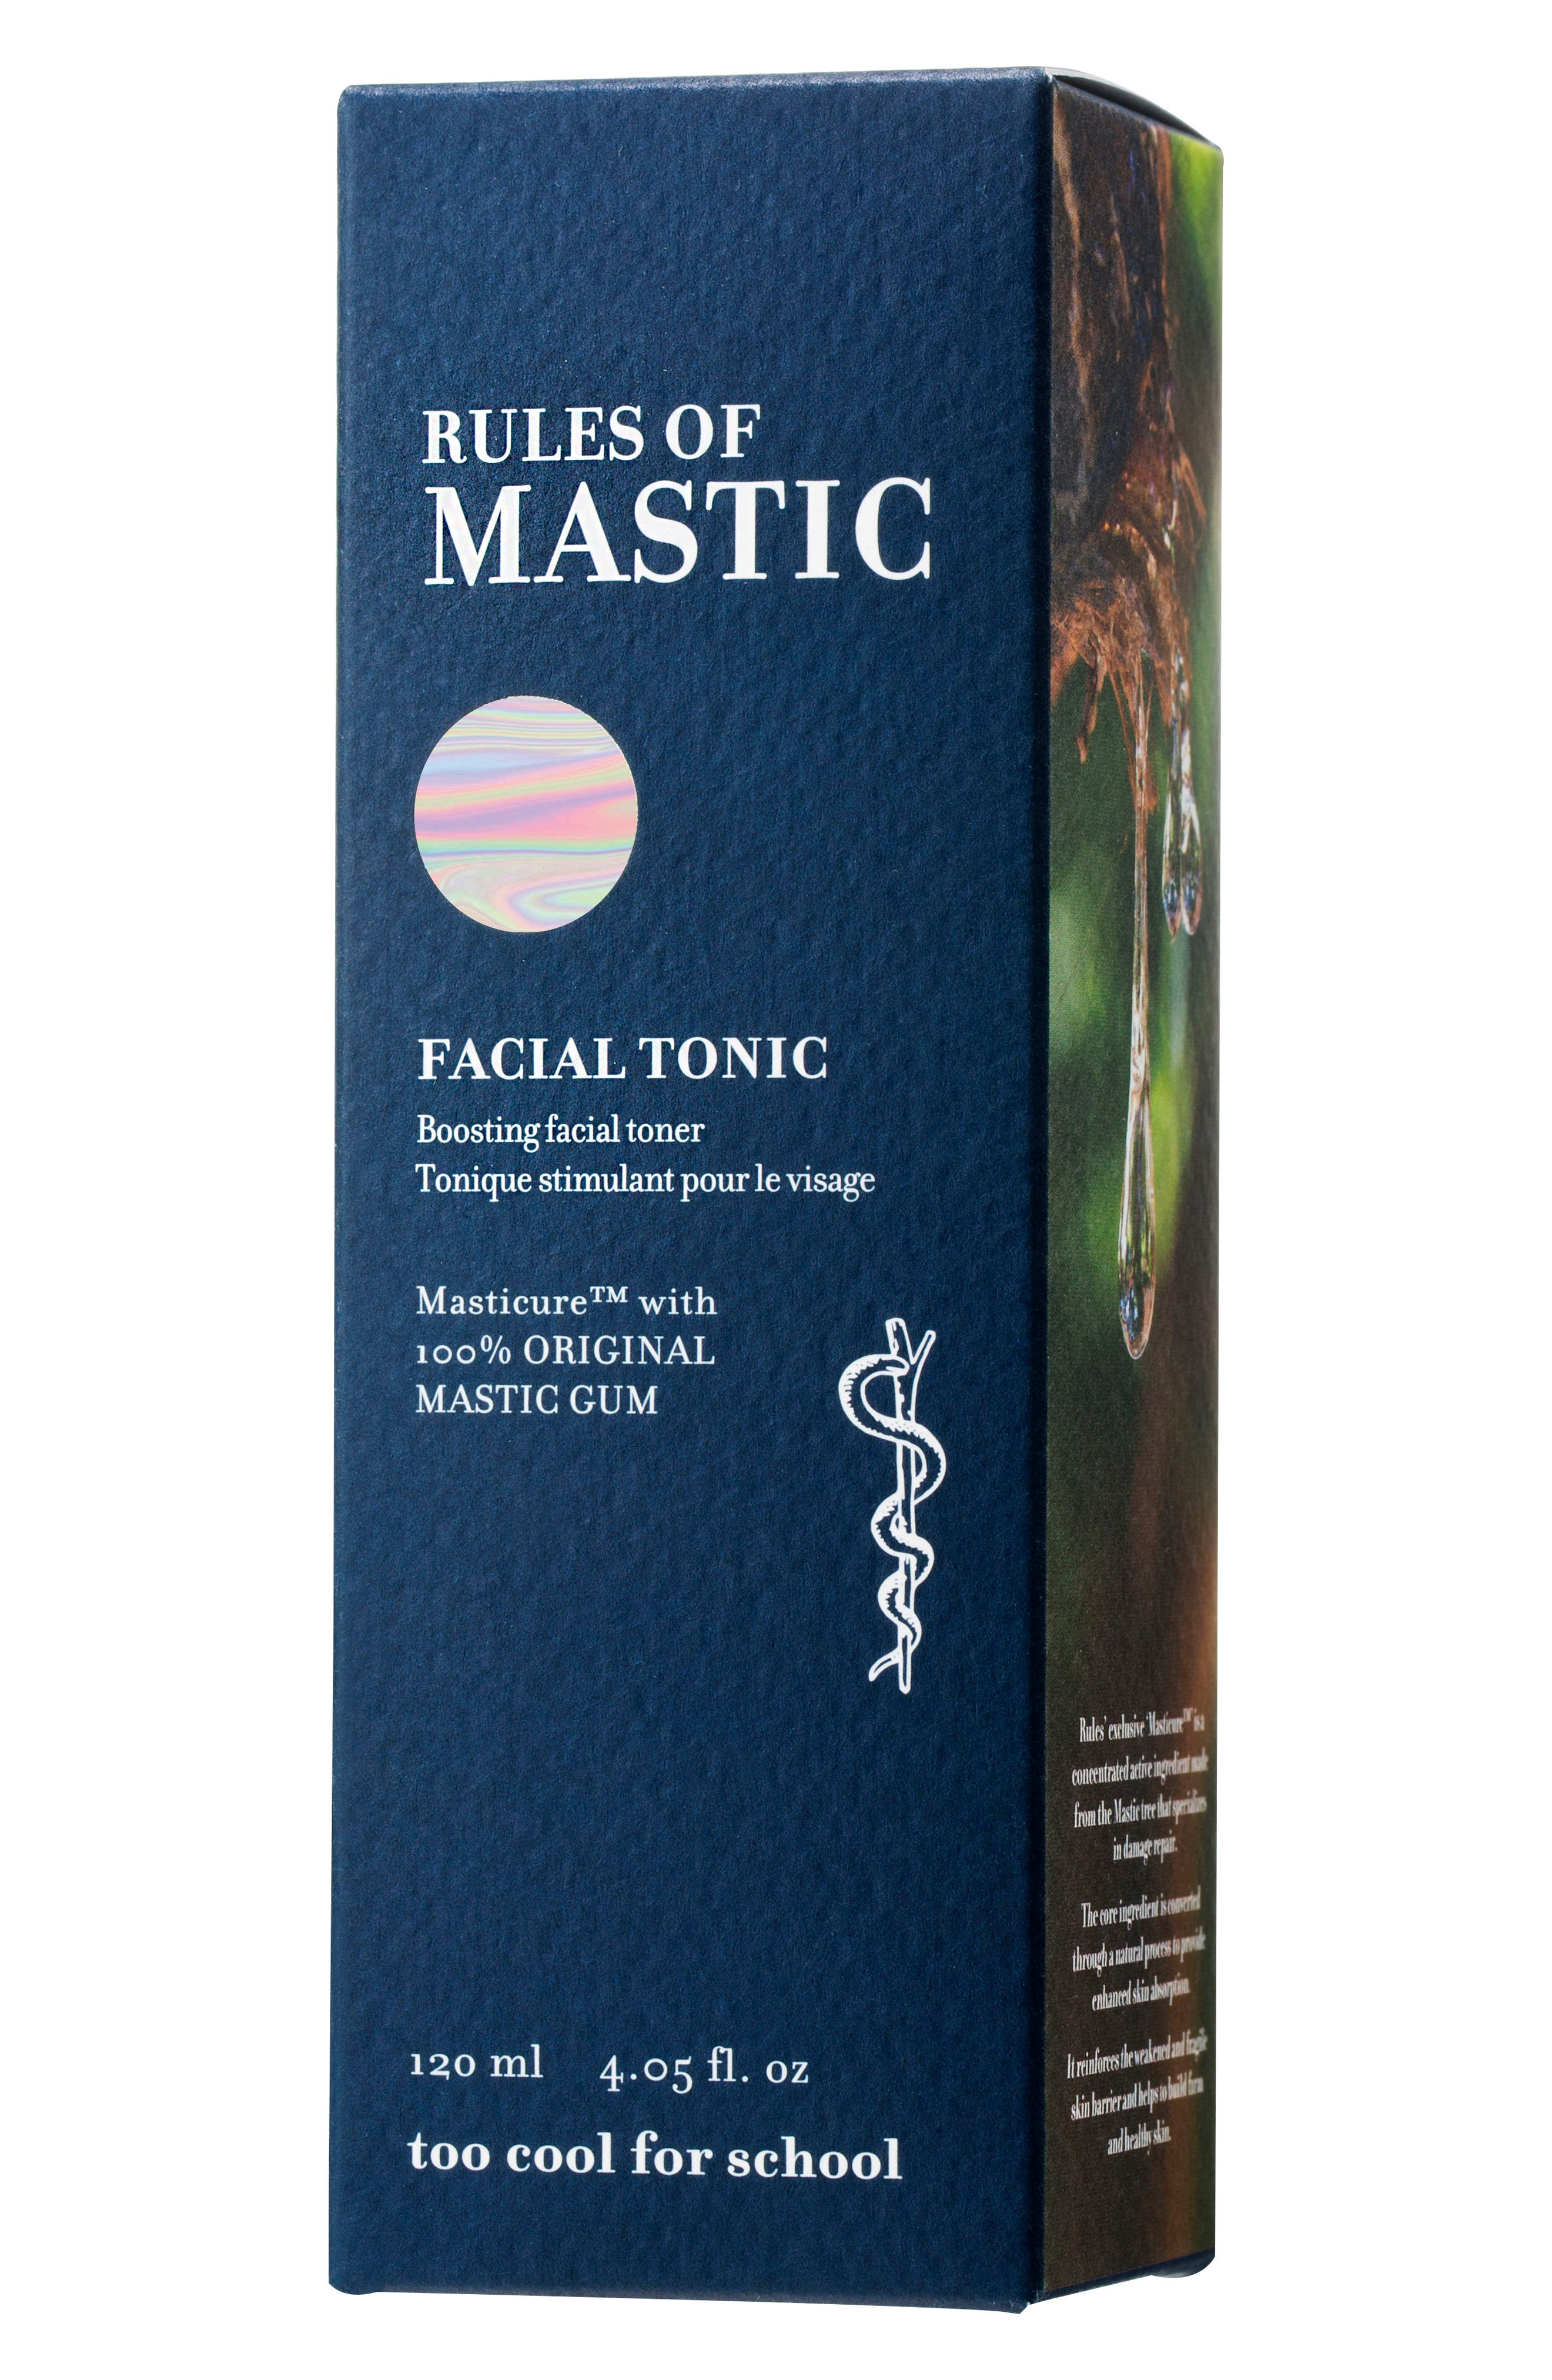 Alternate Image 3  - Too Cool for School Rules of Mastic Facial Tonic